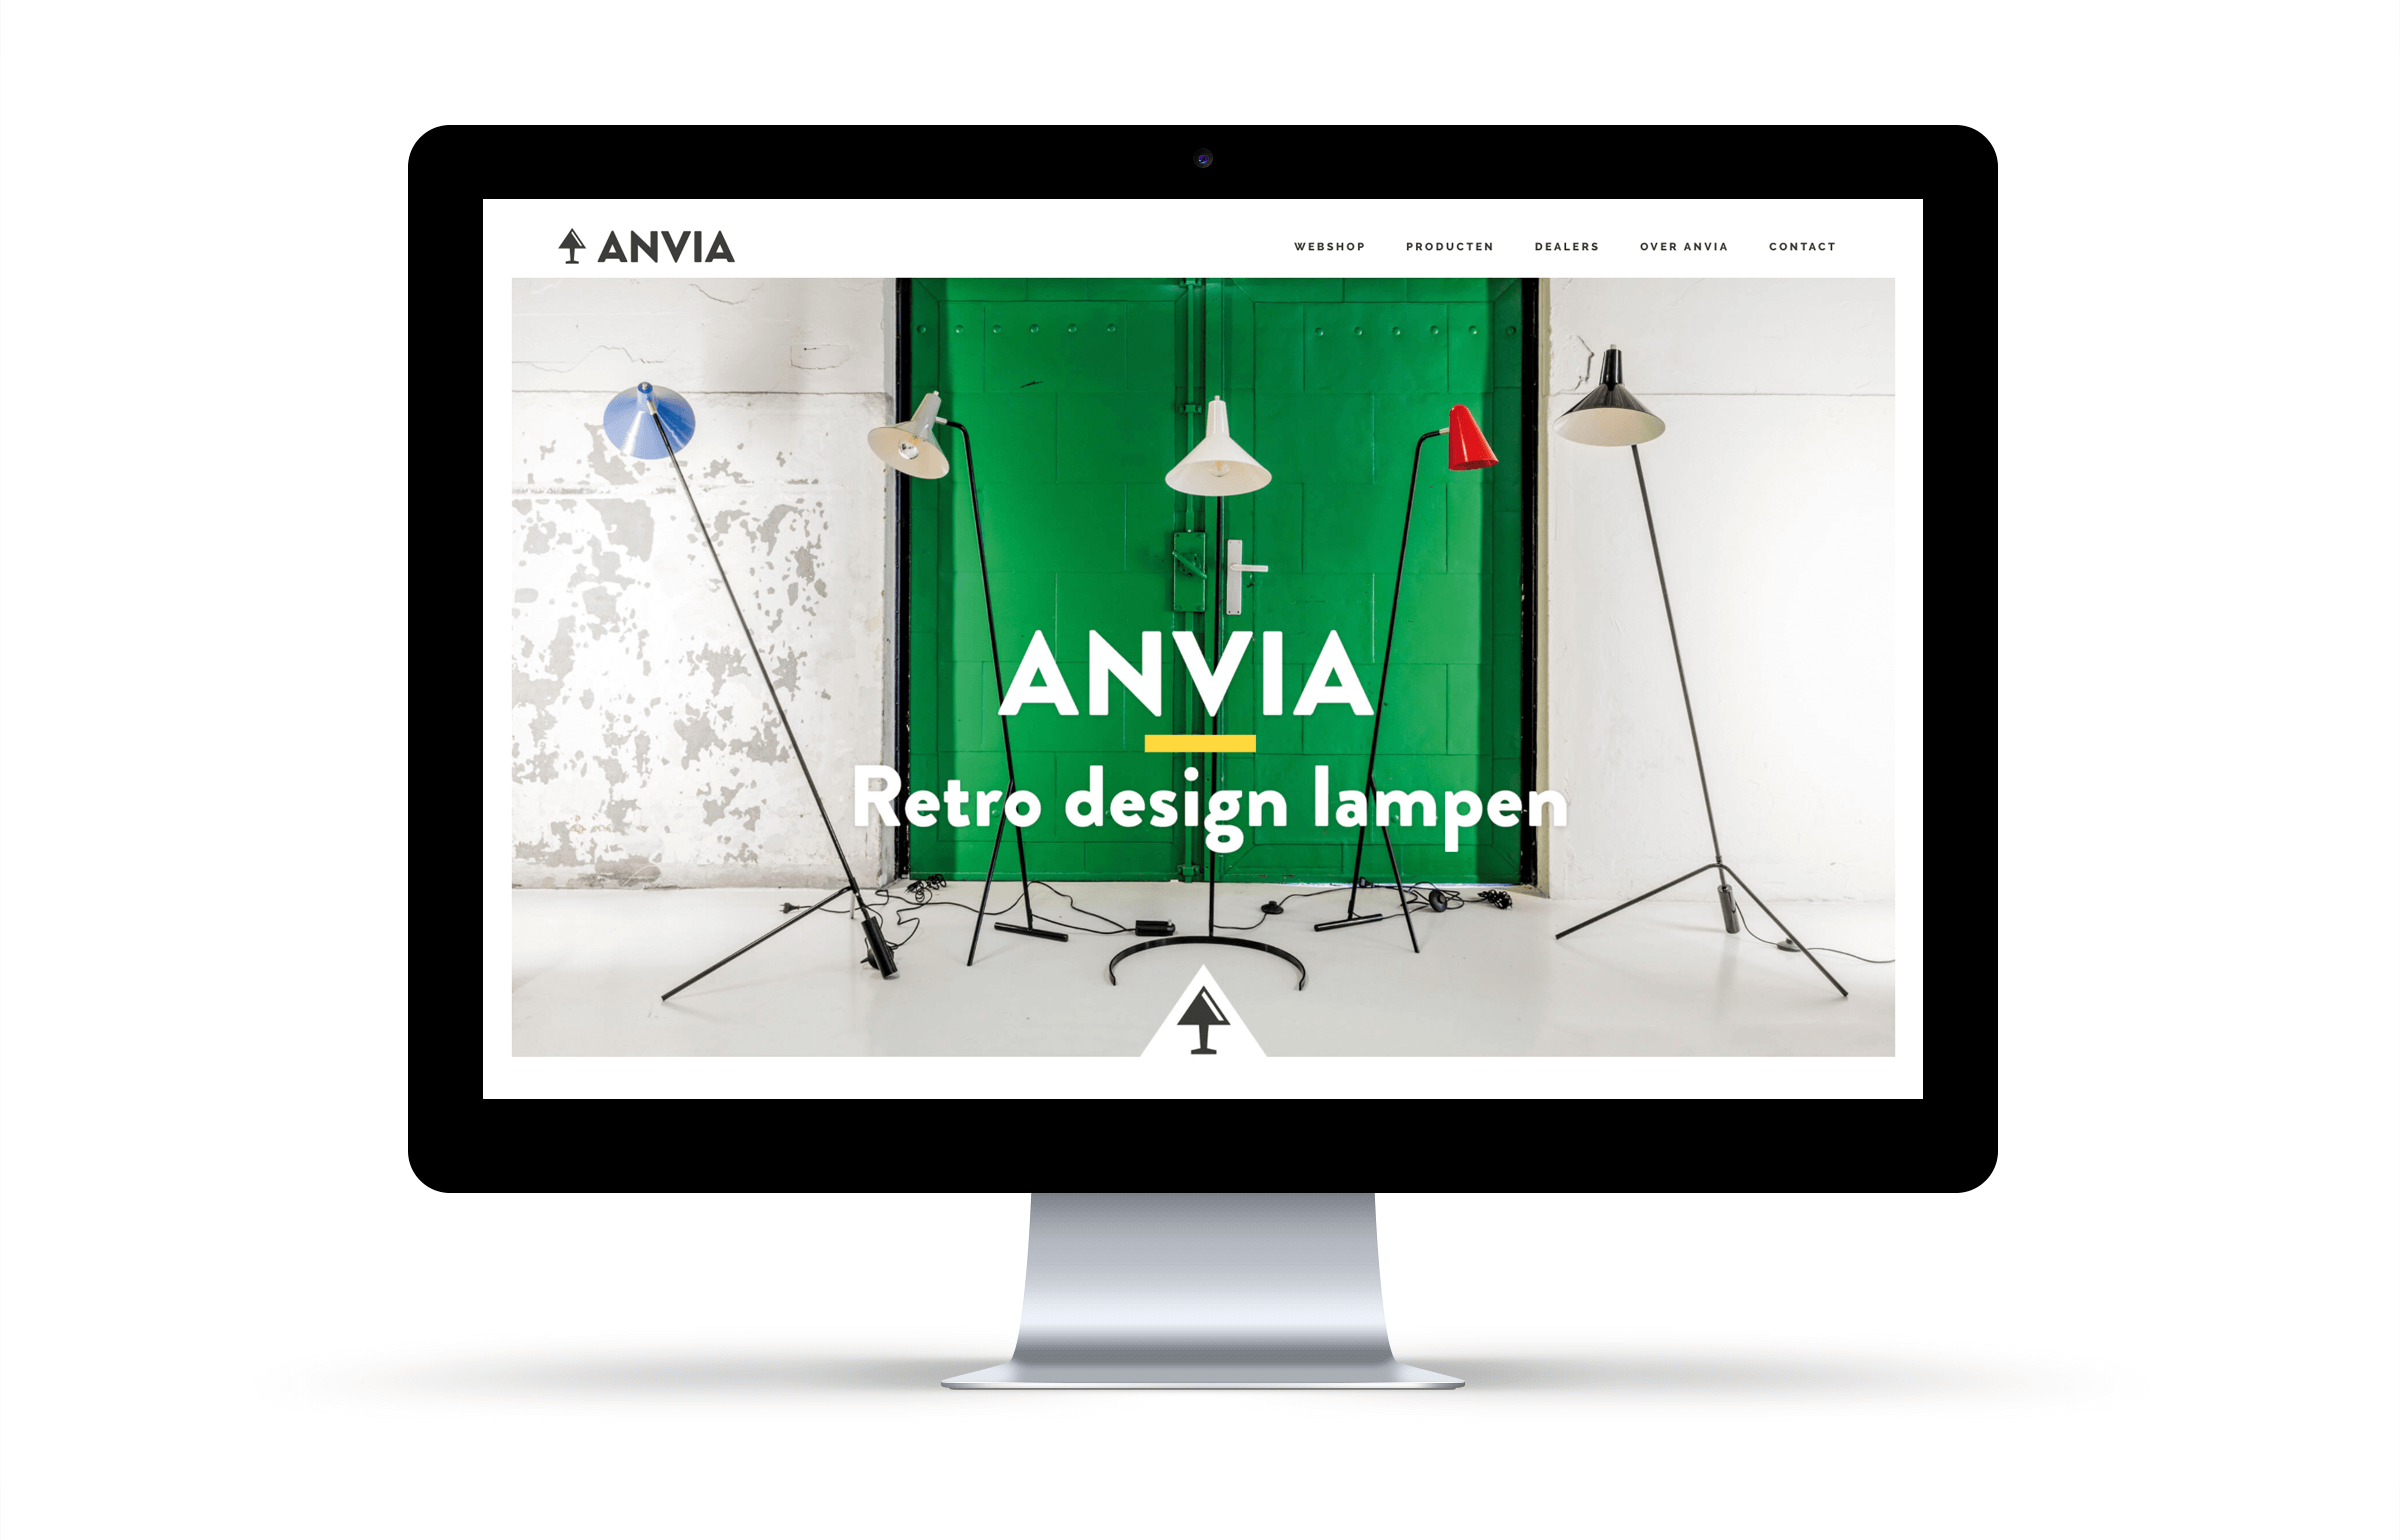 Anvia-website